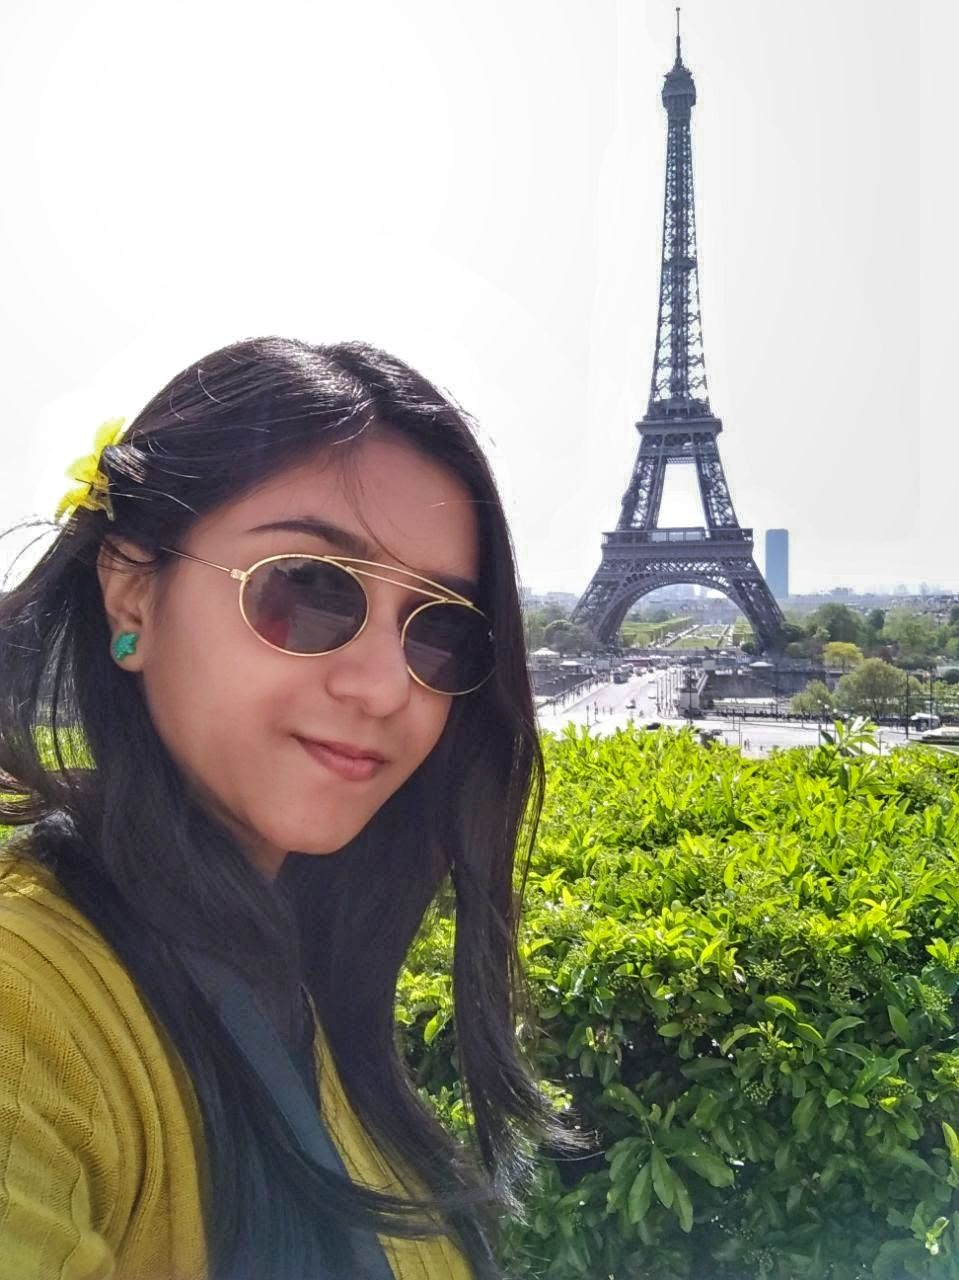 Photo of Paris By siblings on a voyage